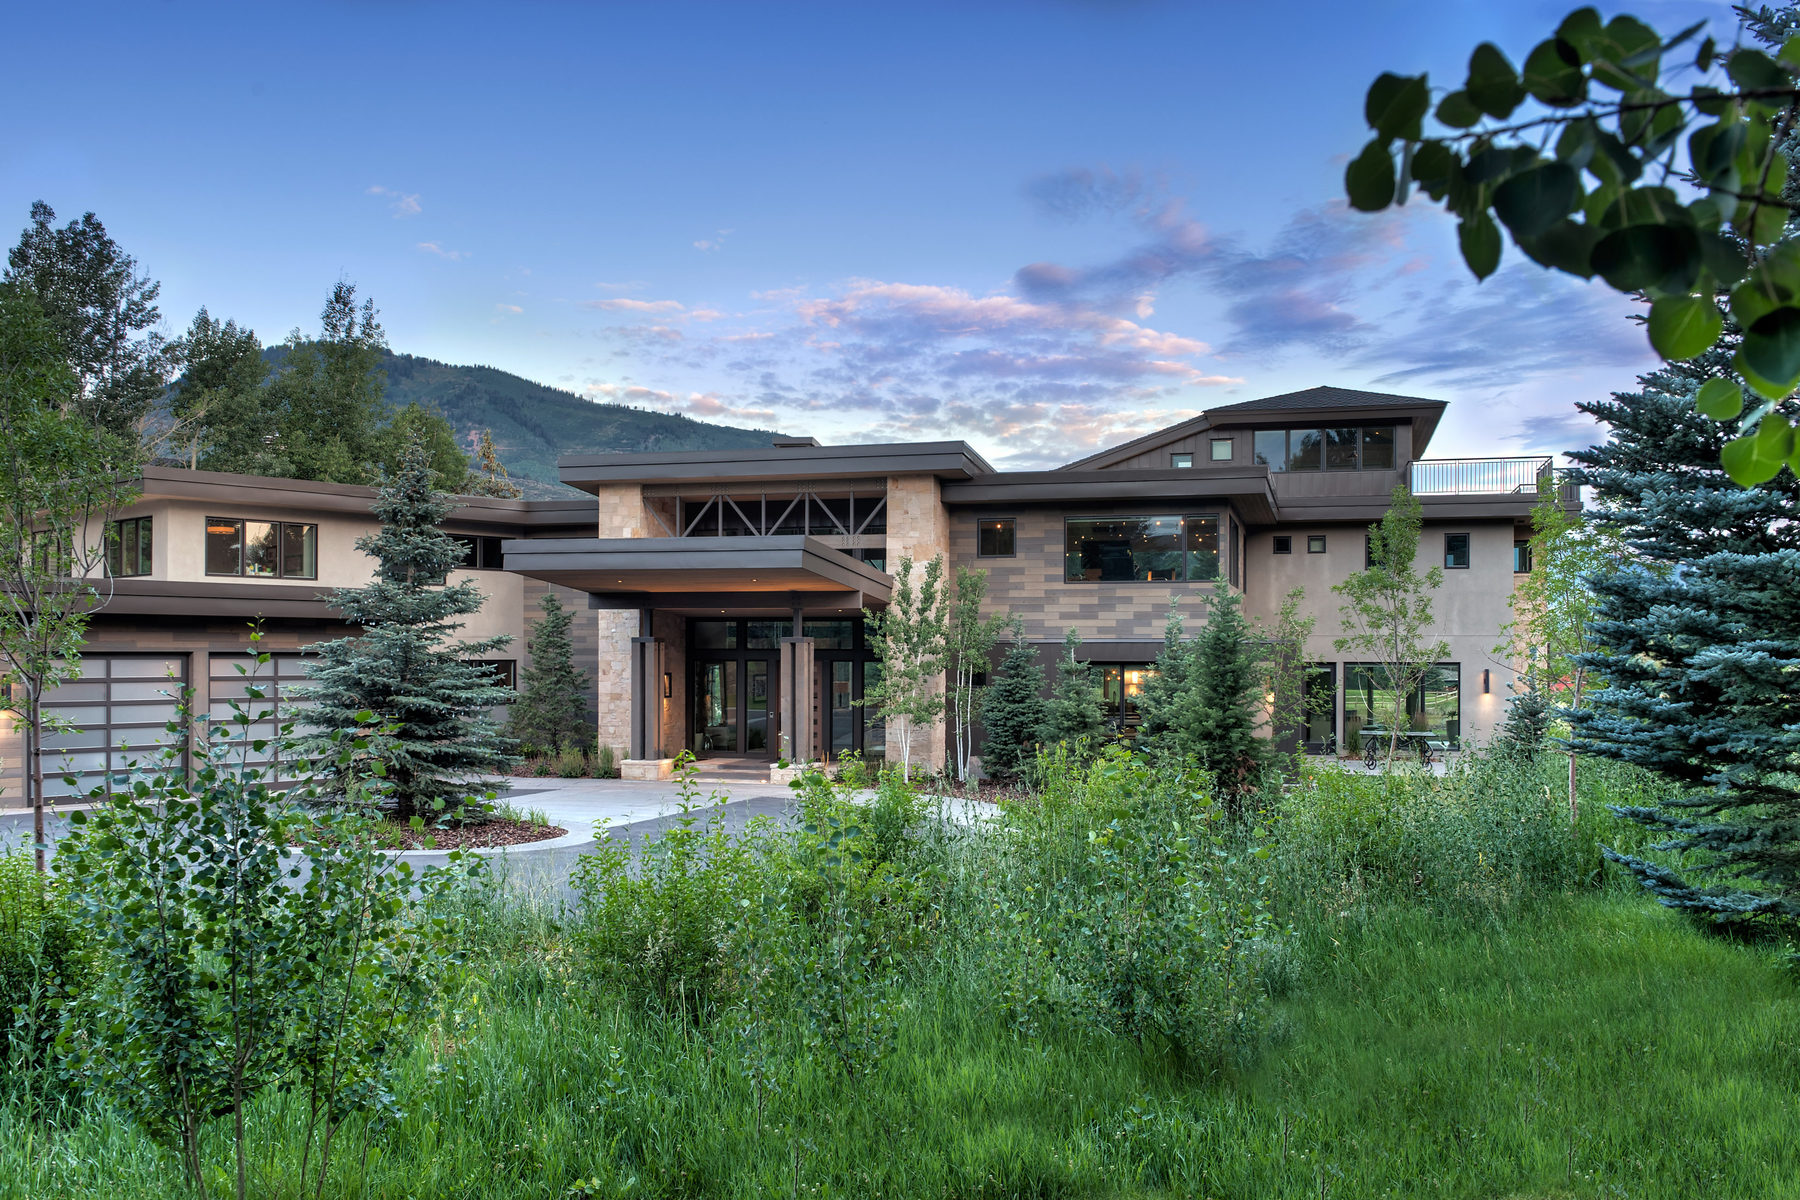 Maison unifamiliale pour l Vente à Exquisite Contemporary Estate 1334 Lucky John Dr Park City, Utah, 84060 États-Unis